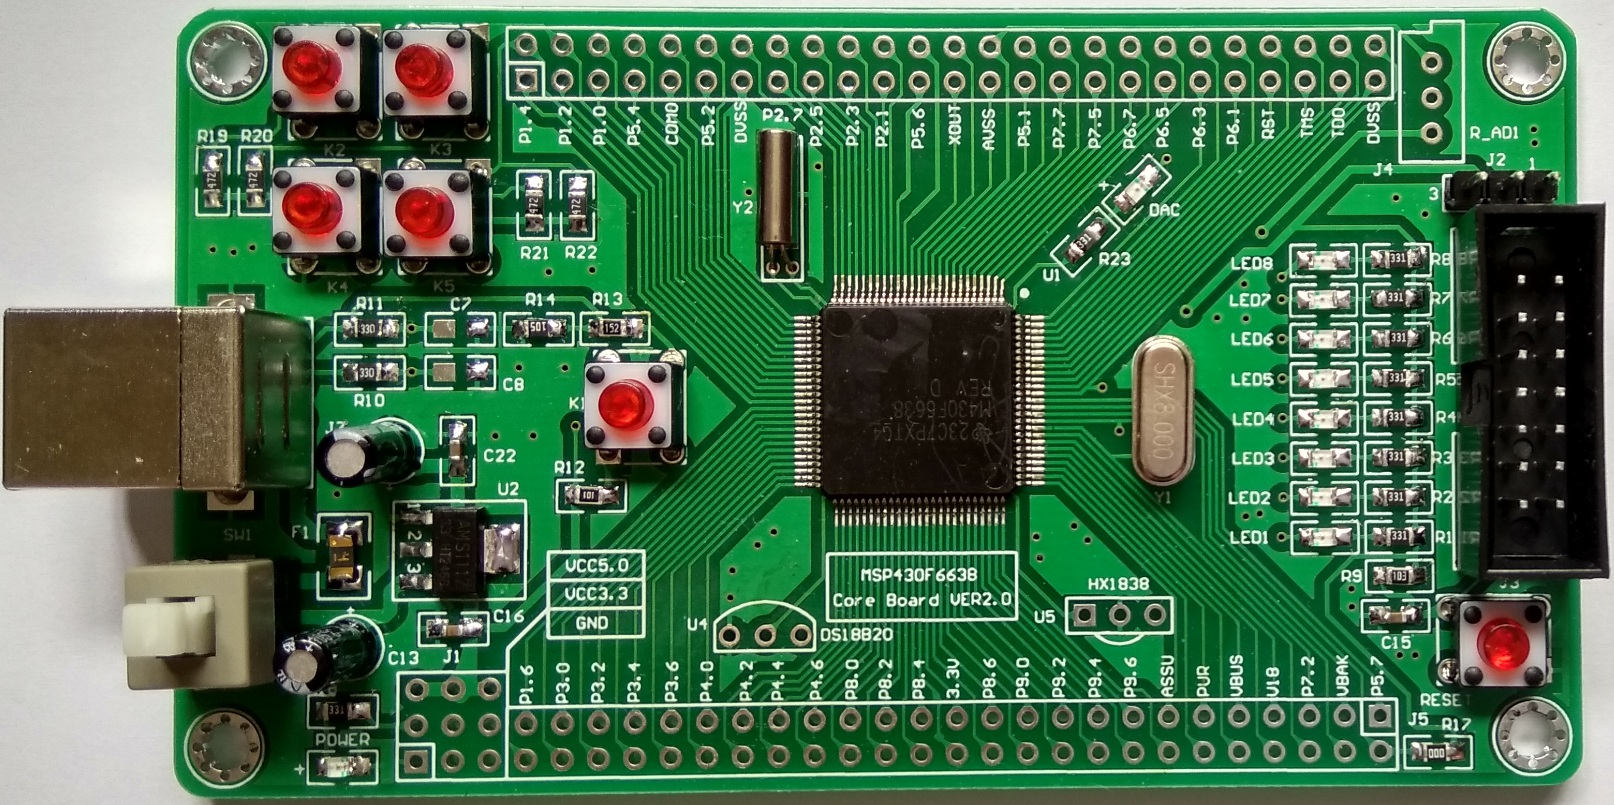 USB MSP430F6638 Minimum System Board Core Board USB Development Board USB Programming linux system programming